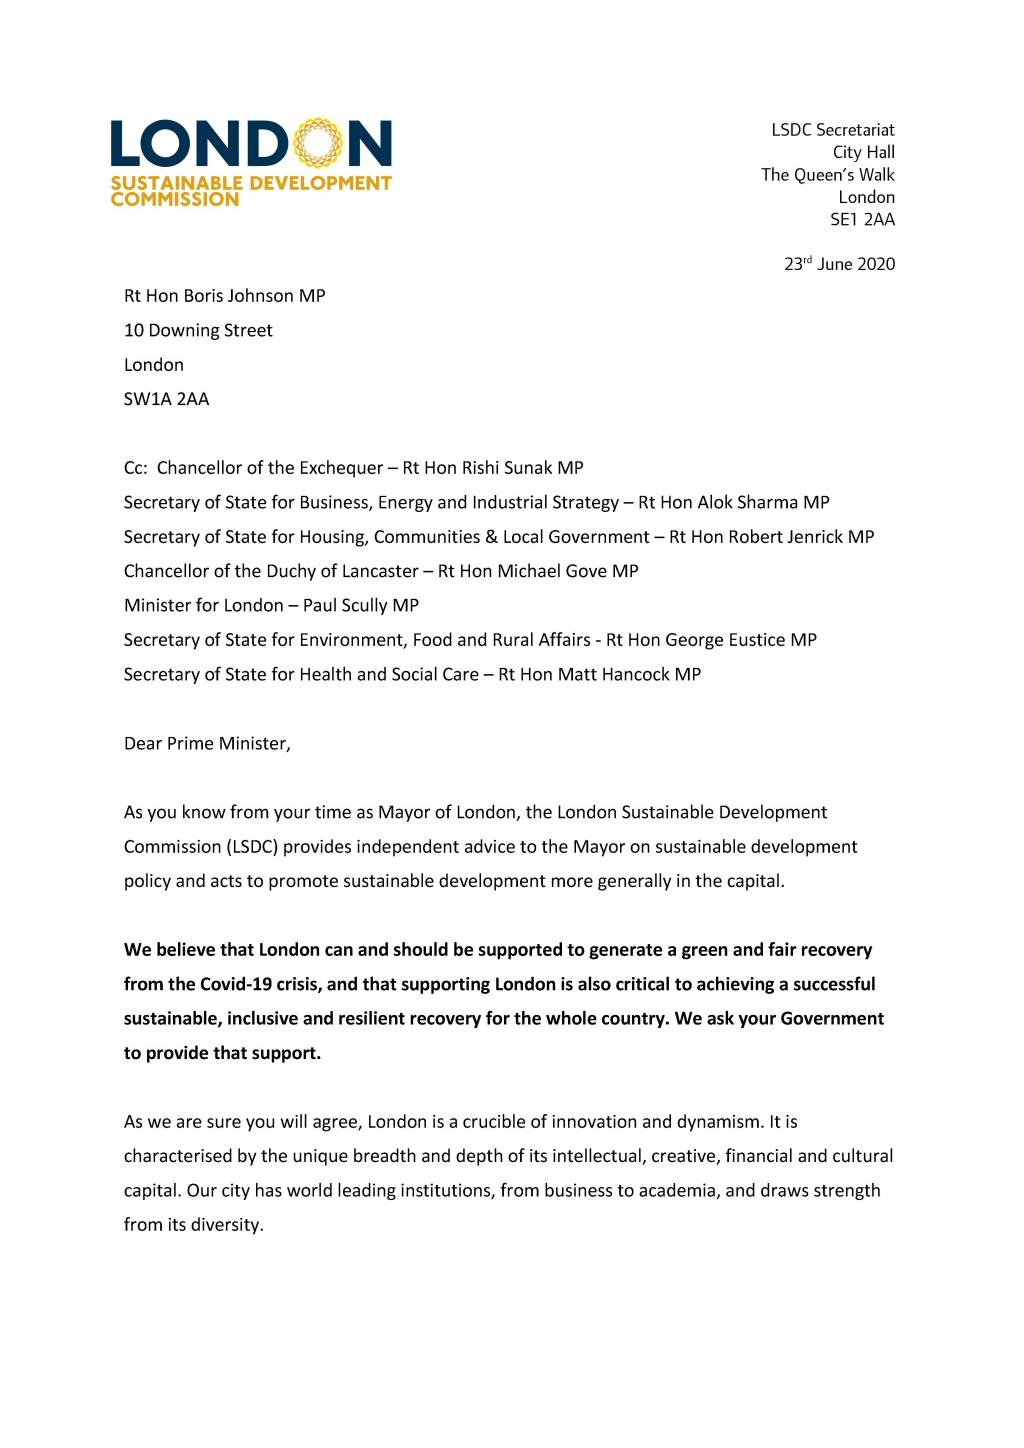 LSDC letter to PM